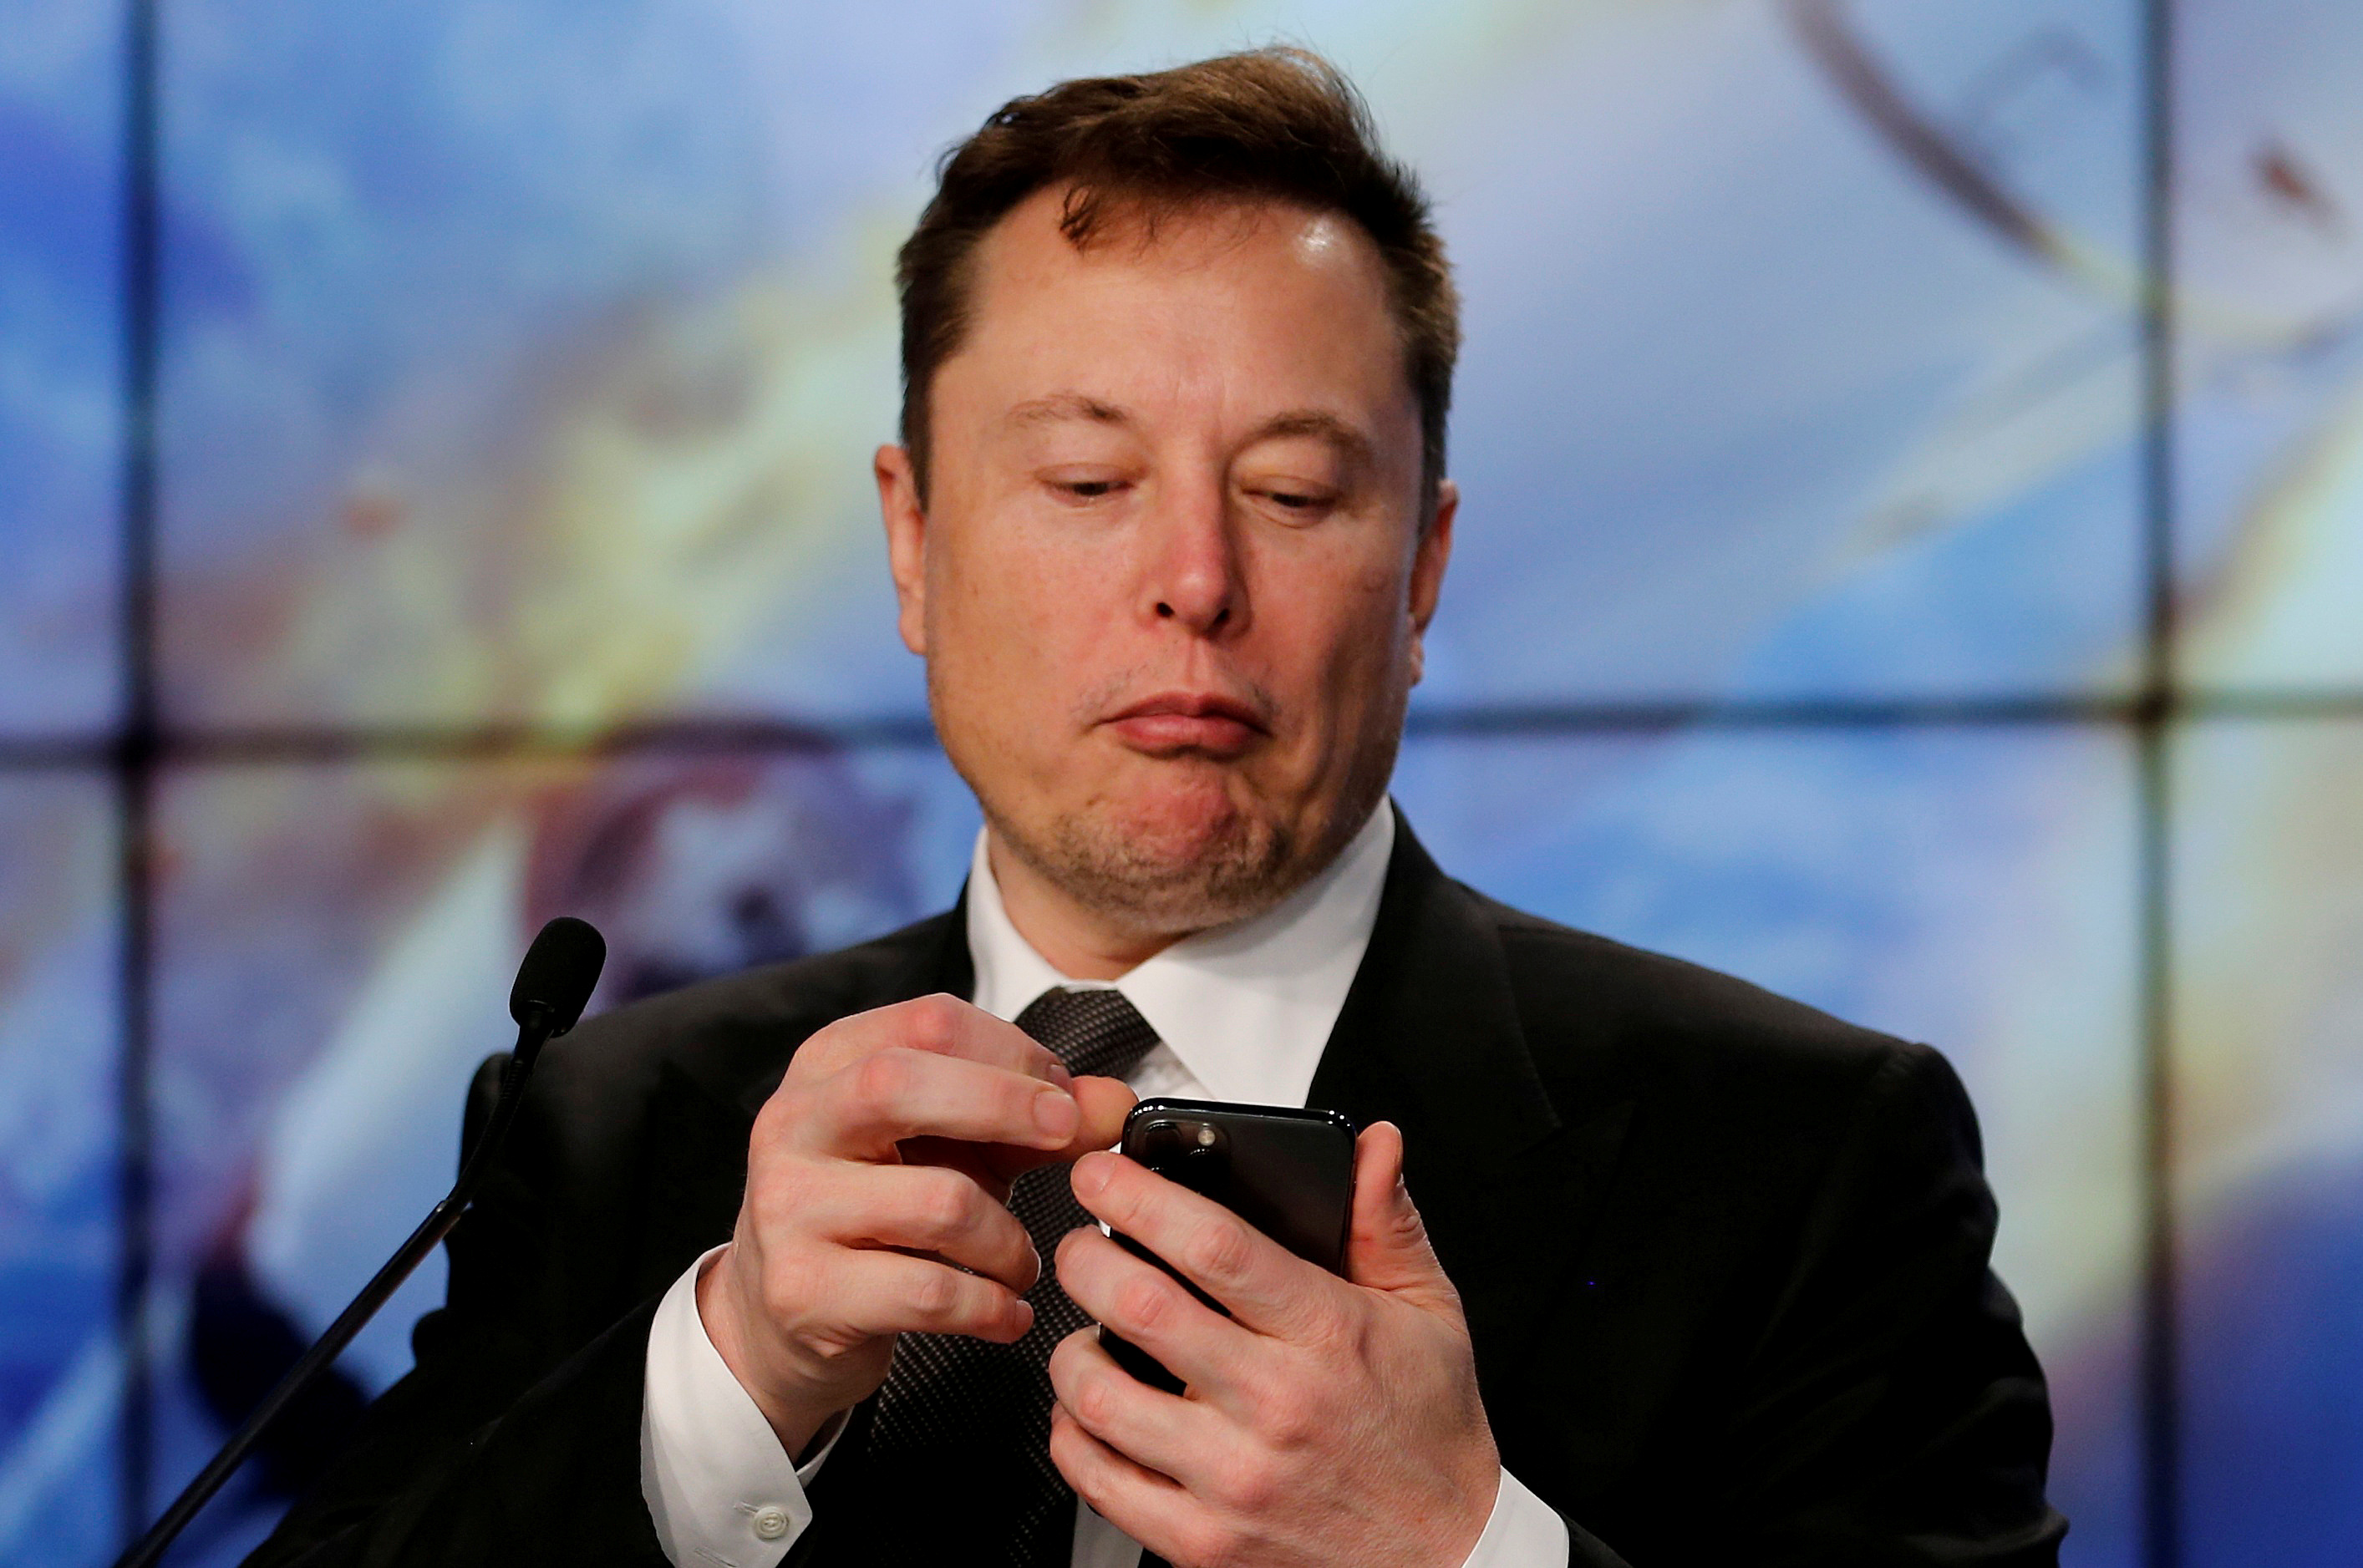 SpaceX founder and chief engineer Elon Musk looks at his mobile phone during a post-launch news conference to discuss the  SpaceX Crew Dragon astronaut capsule in-flight abort test at the Kennedy Space Center in Cape Canaveral, Florida, U.S. January 19, 2020. REUTERS/Joe Skipper/File Photo